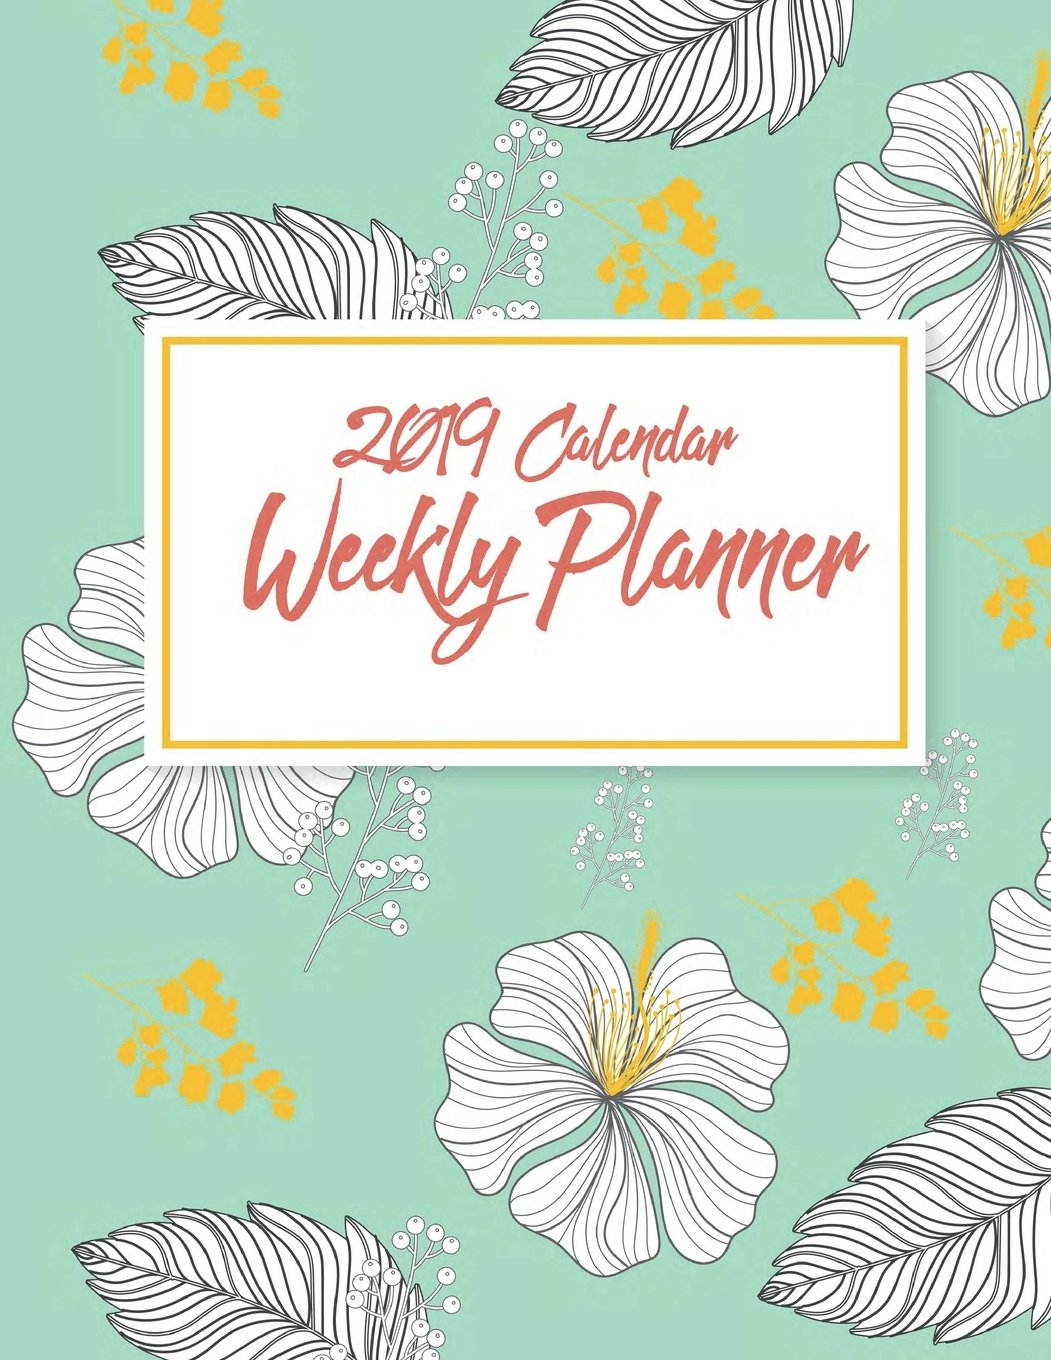 """2019 Calendar Weekly Planner: Weekly View Planners (Calendars, Planners & Personal Organizers) Daily journal Planner, 12 Months Calendar, schedule ... to December 2019 242 pages Large 8.5"""" x 11"""" PDF"""